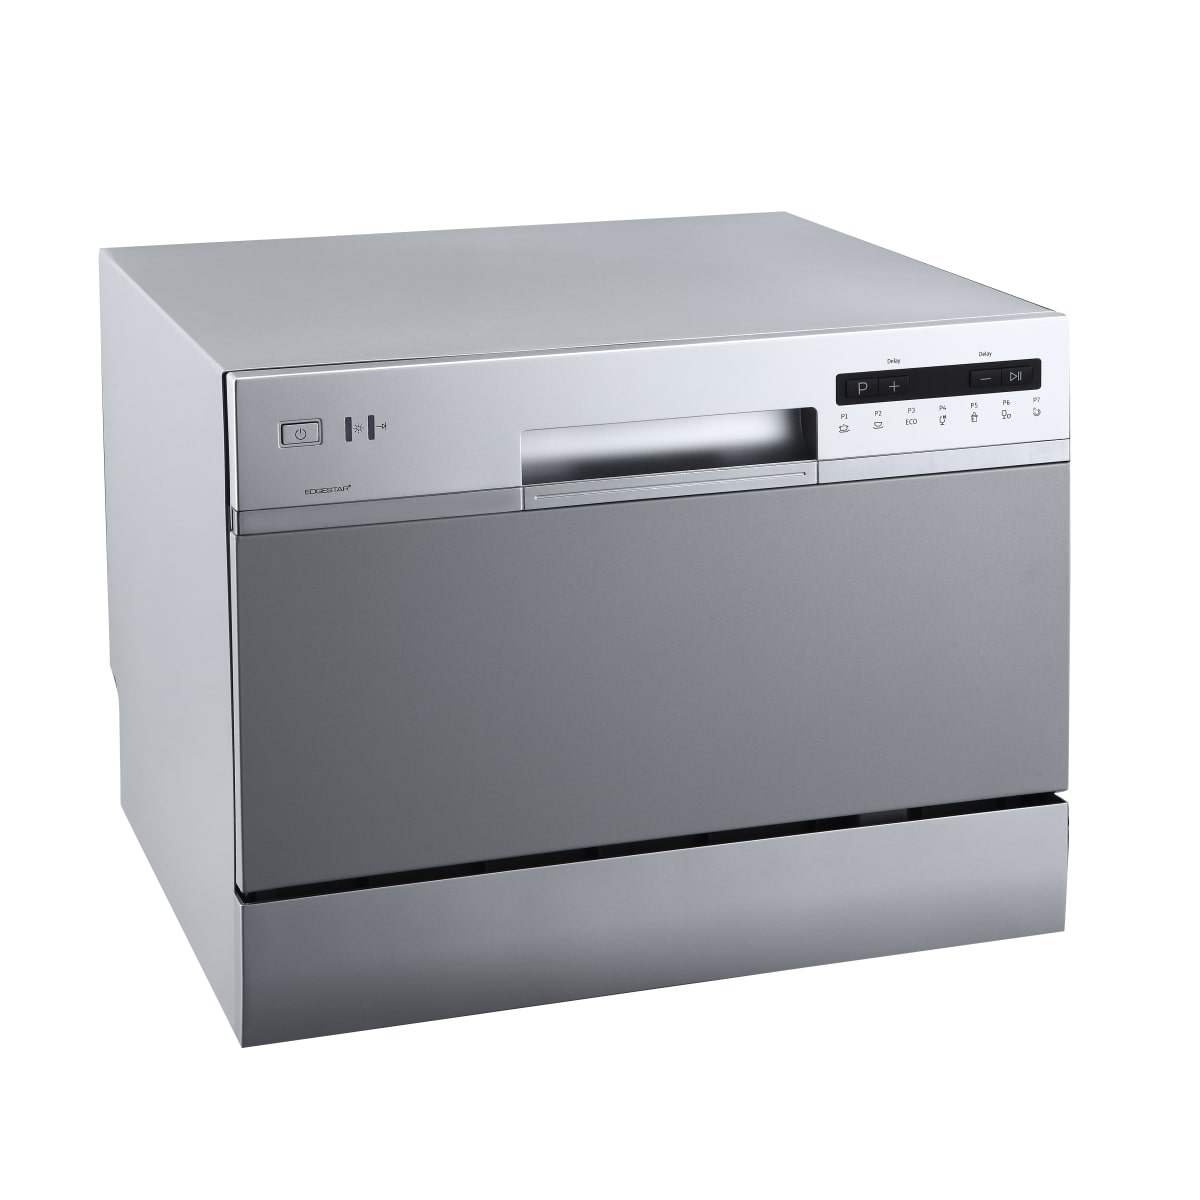 EdgeStar 22 Inch Wide 6 Place Setting Energy Star Rated Countertop Dishwasher